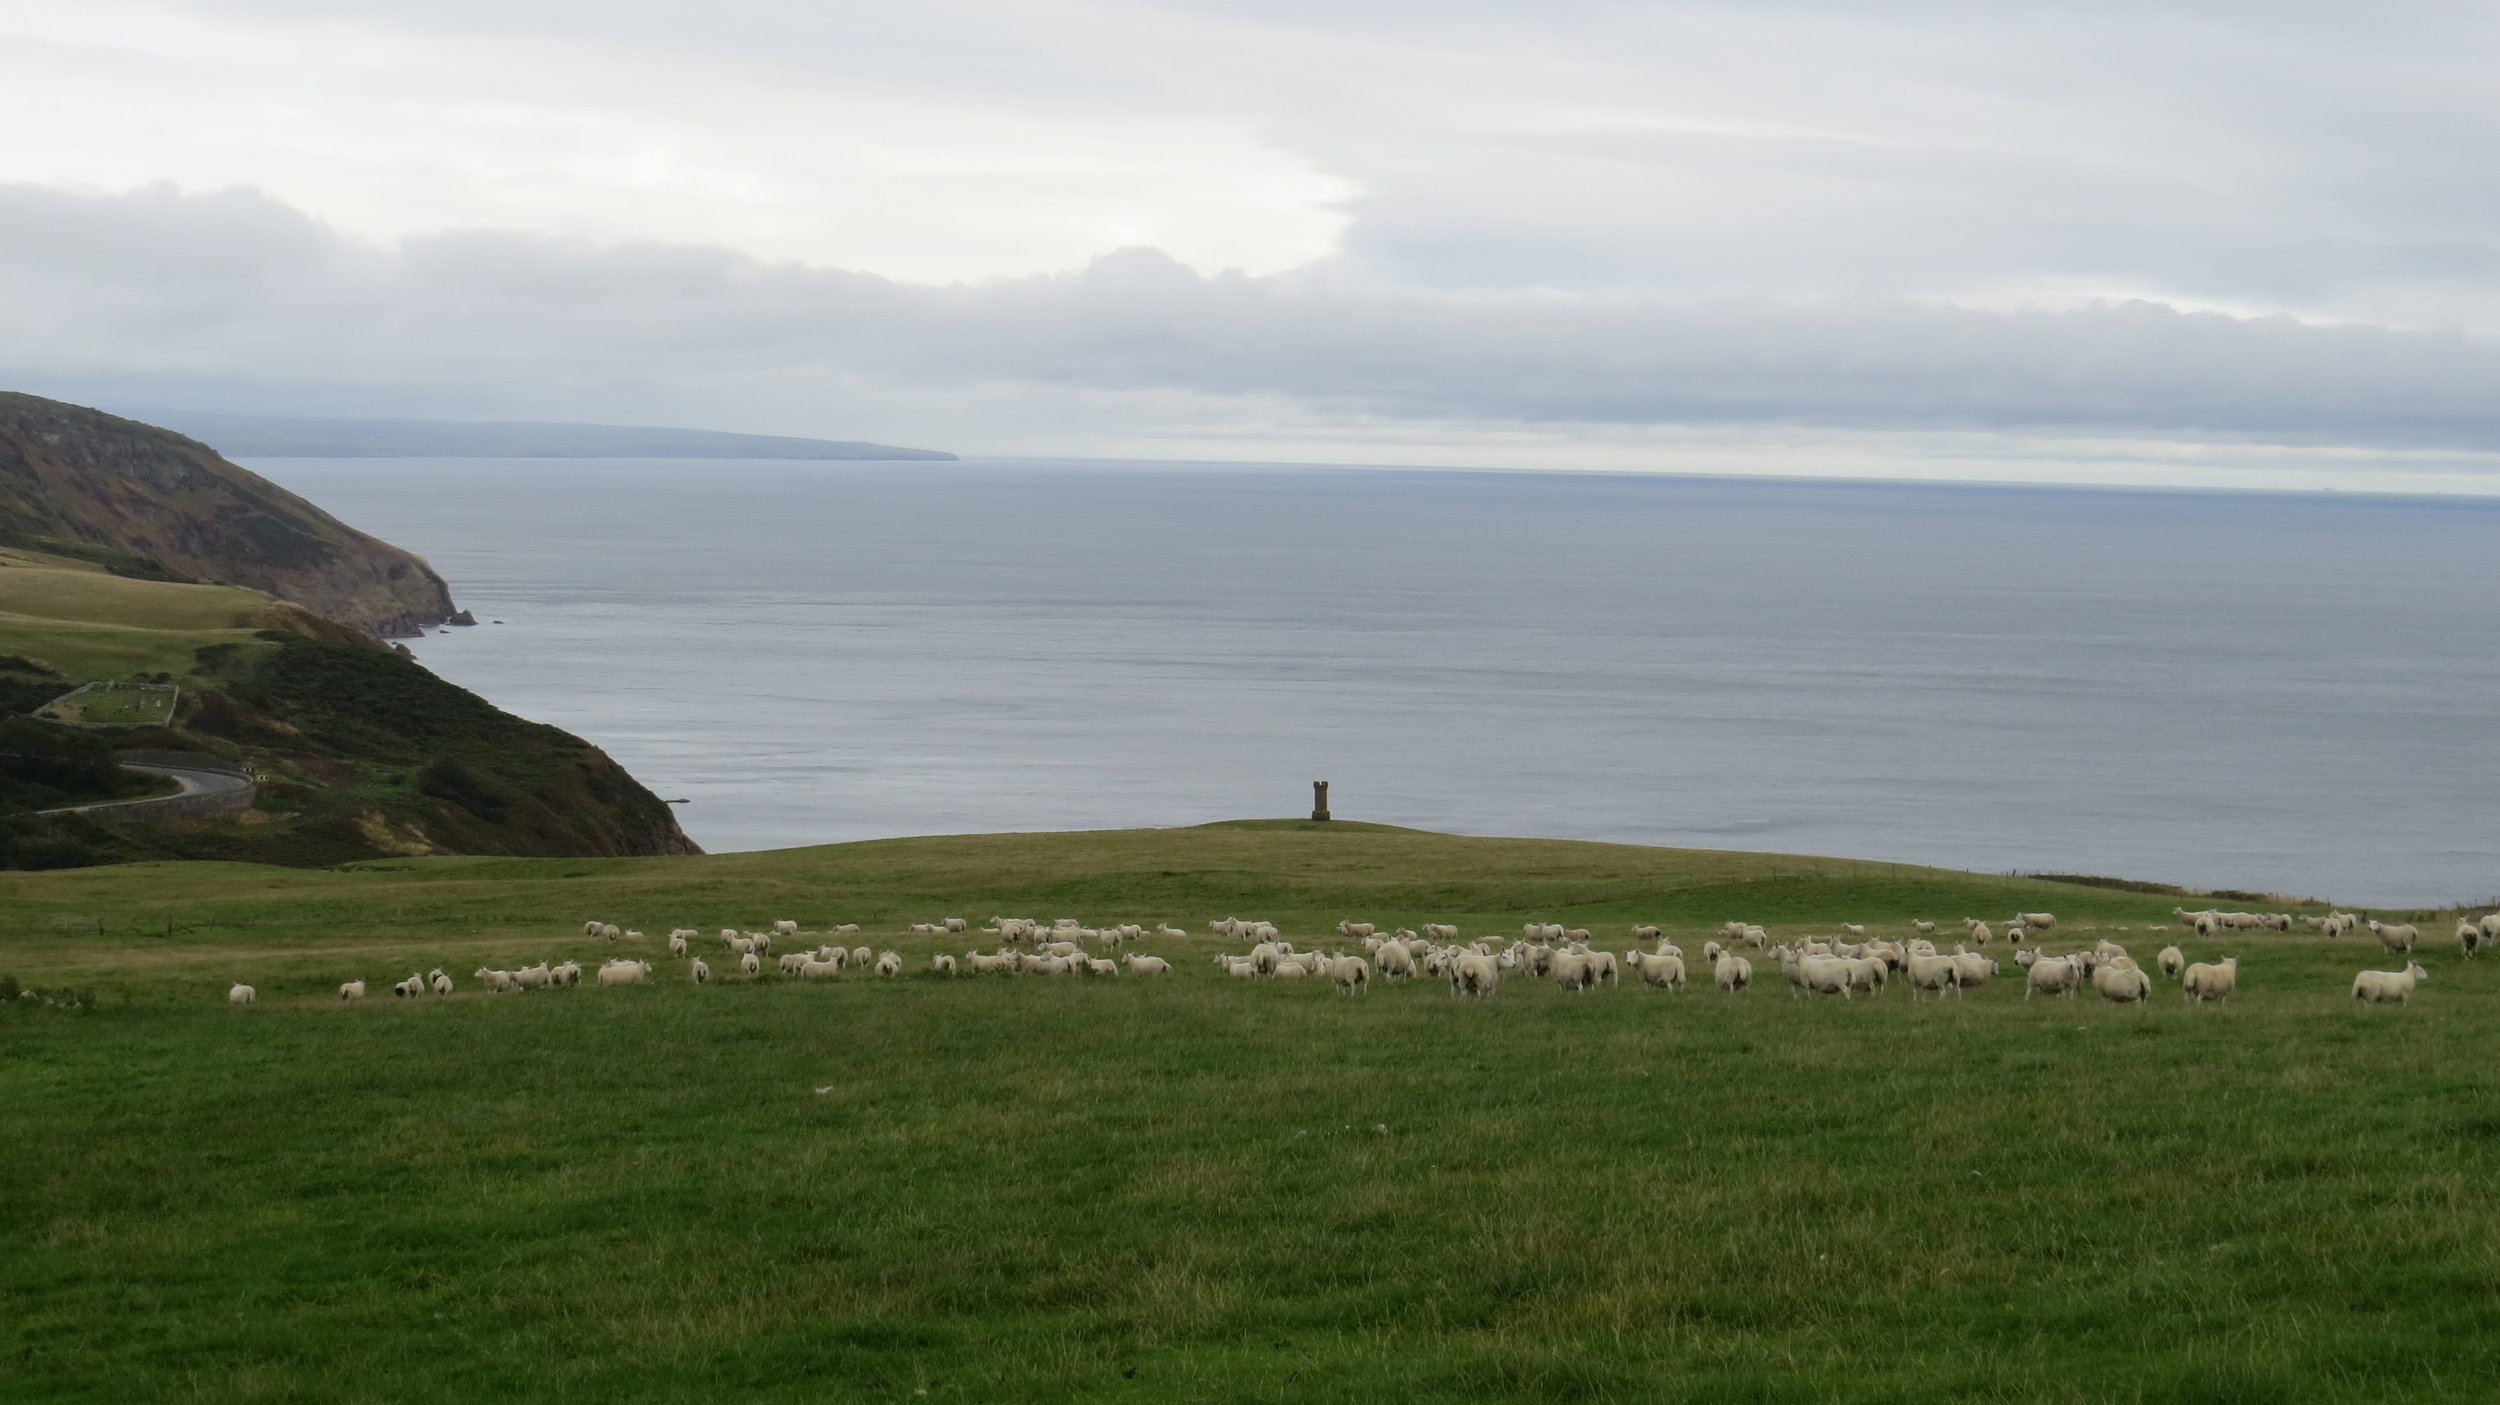 Sheep/Monument above Berriedale